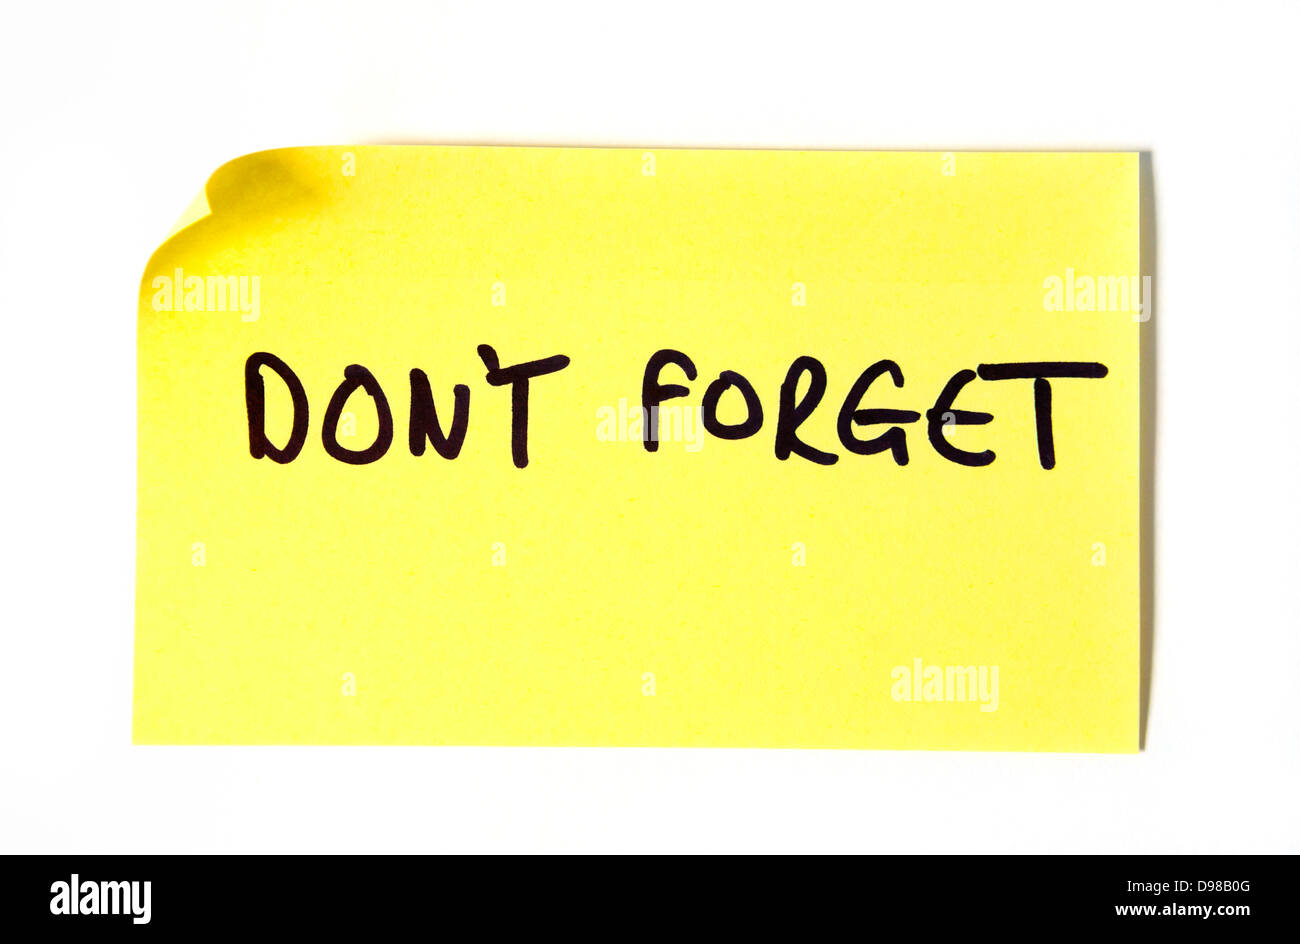 Don't Forget written in capital letters on a yellow post it note. Stock Photo